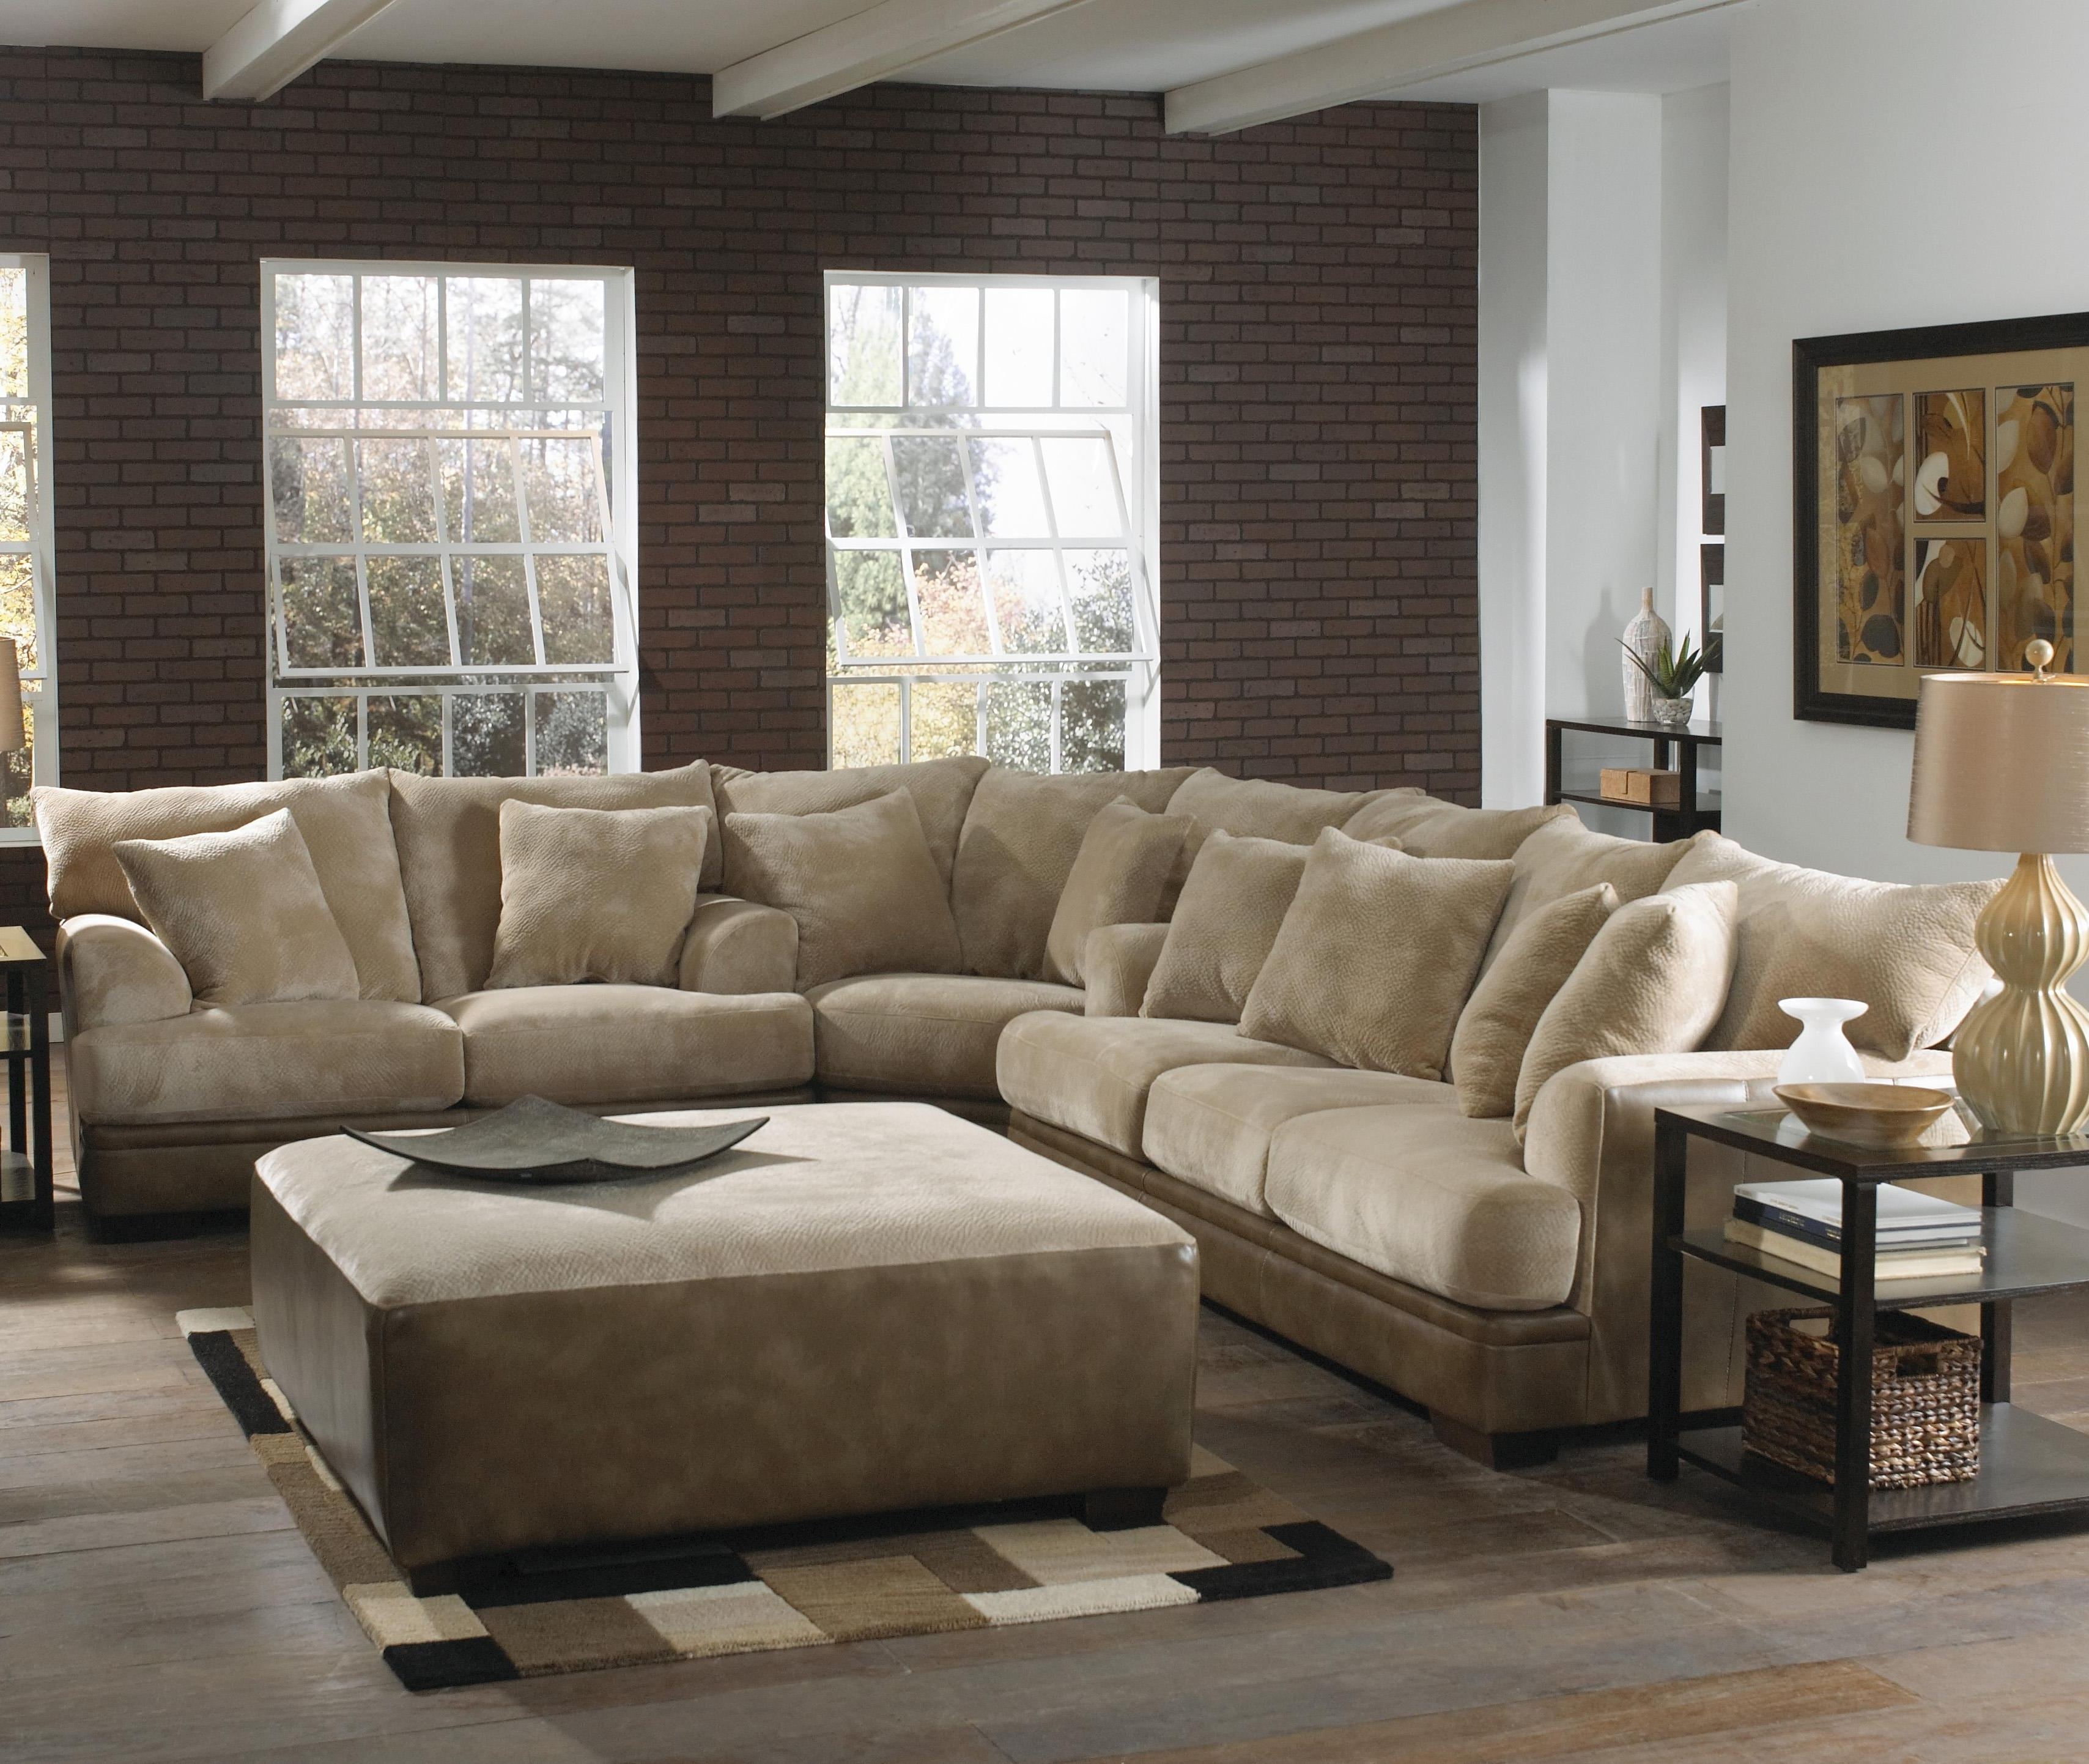 Most Recent 7 Seat Sectional Sofa – Cleanupflorida Throughout Sectional Sofas At Brick (View 14 of 20)